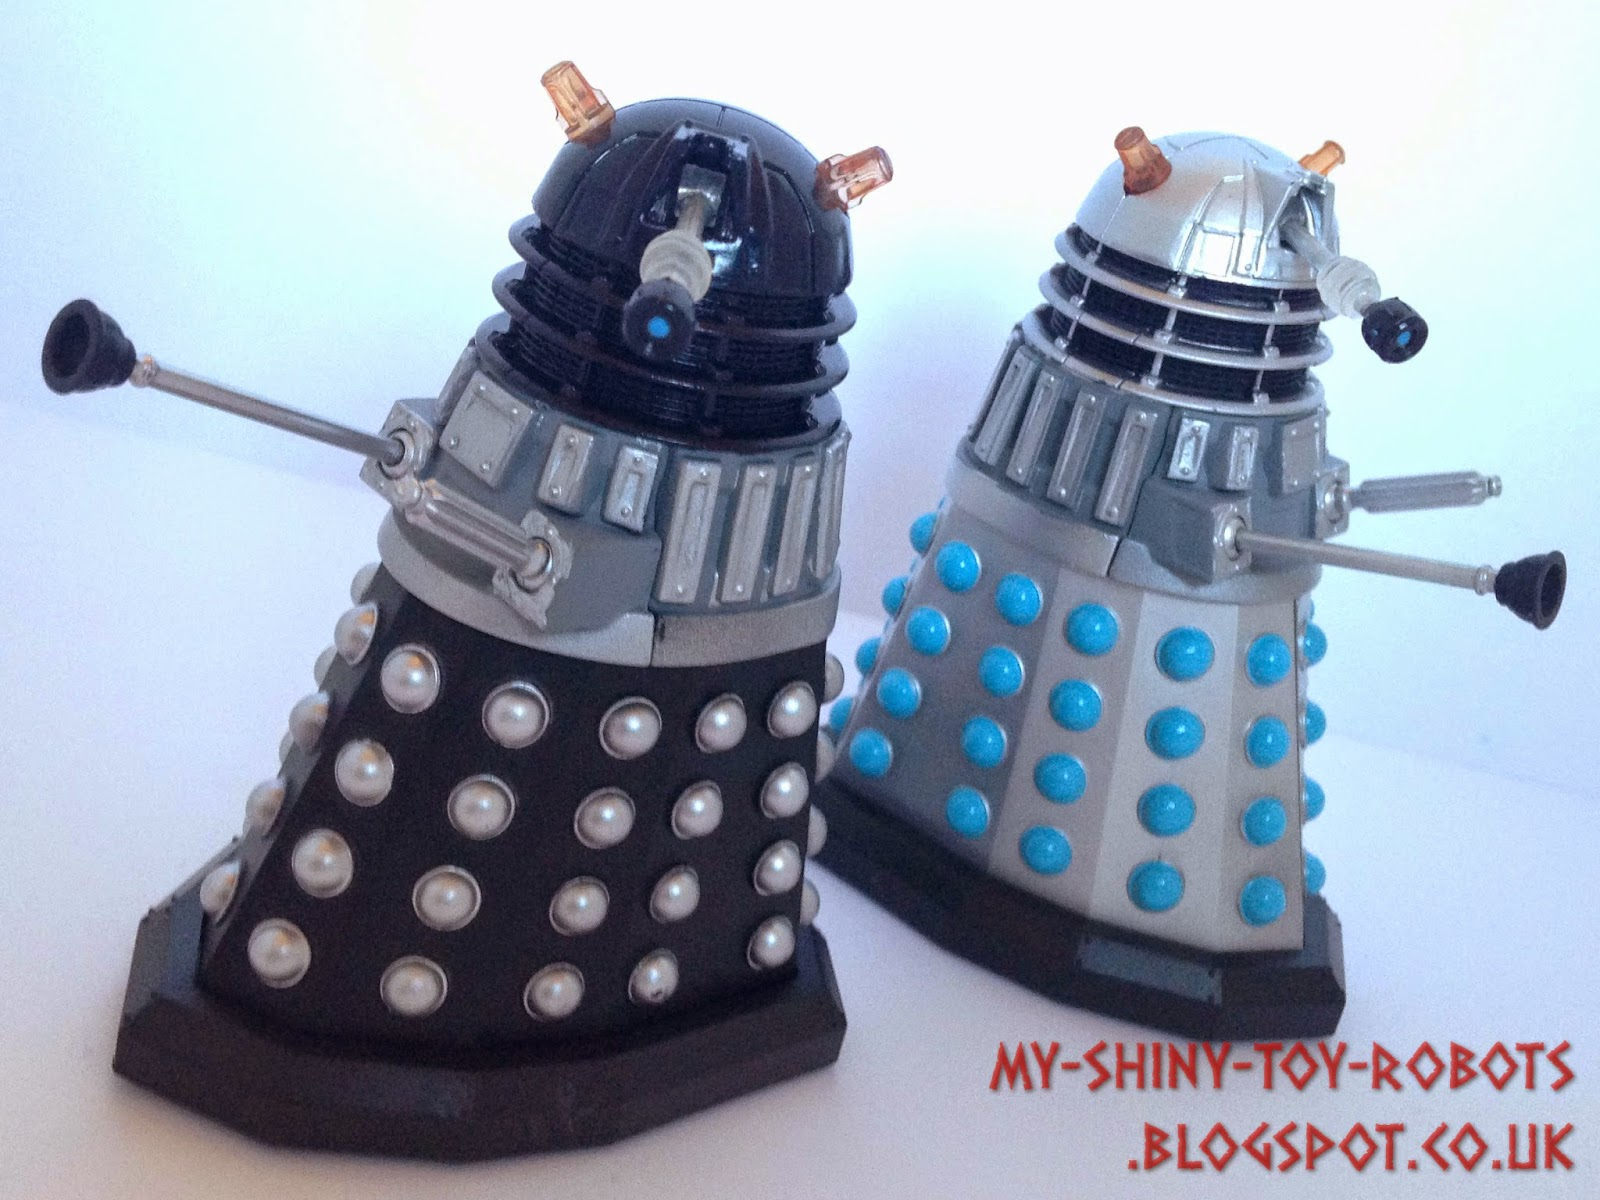 Posing the Daleks